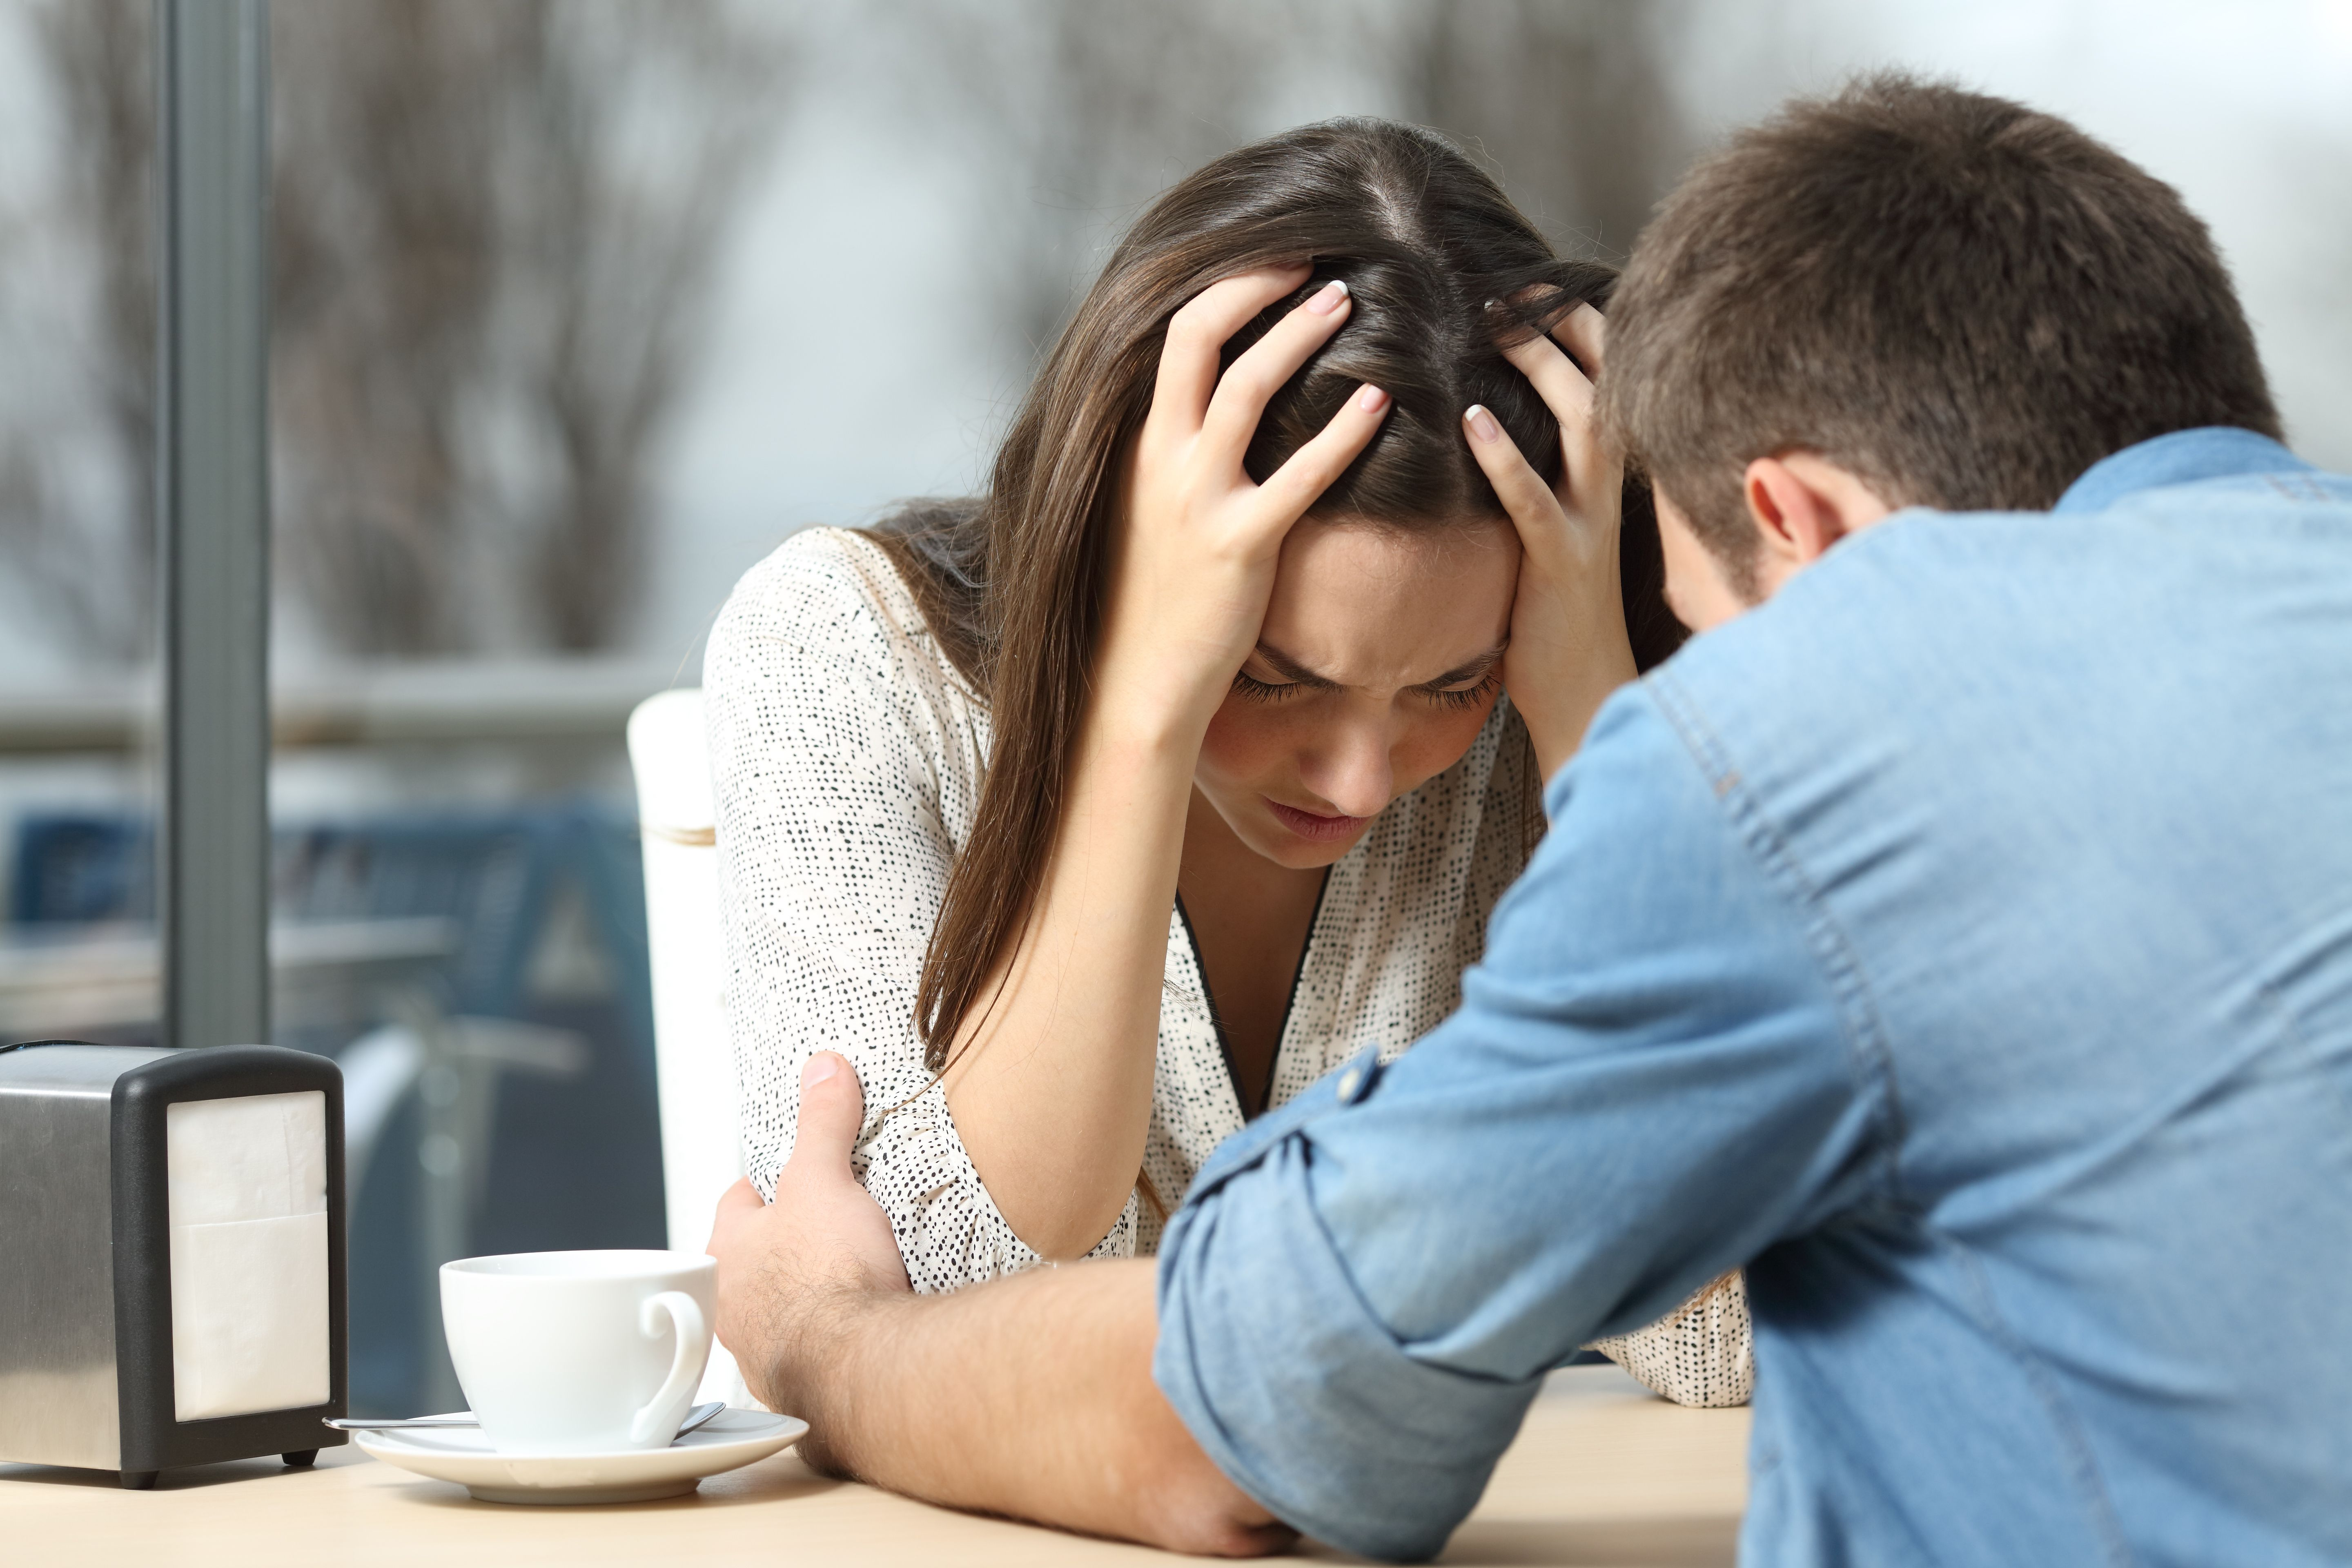 A couple talks about a problem they have together. | Photo: Shutterstock